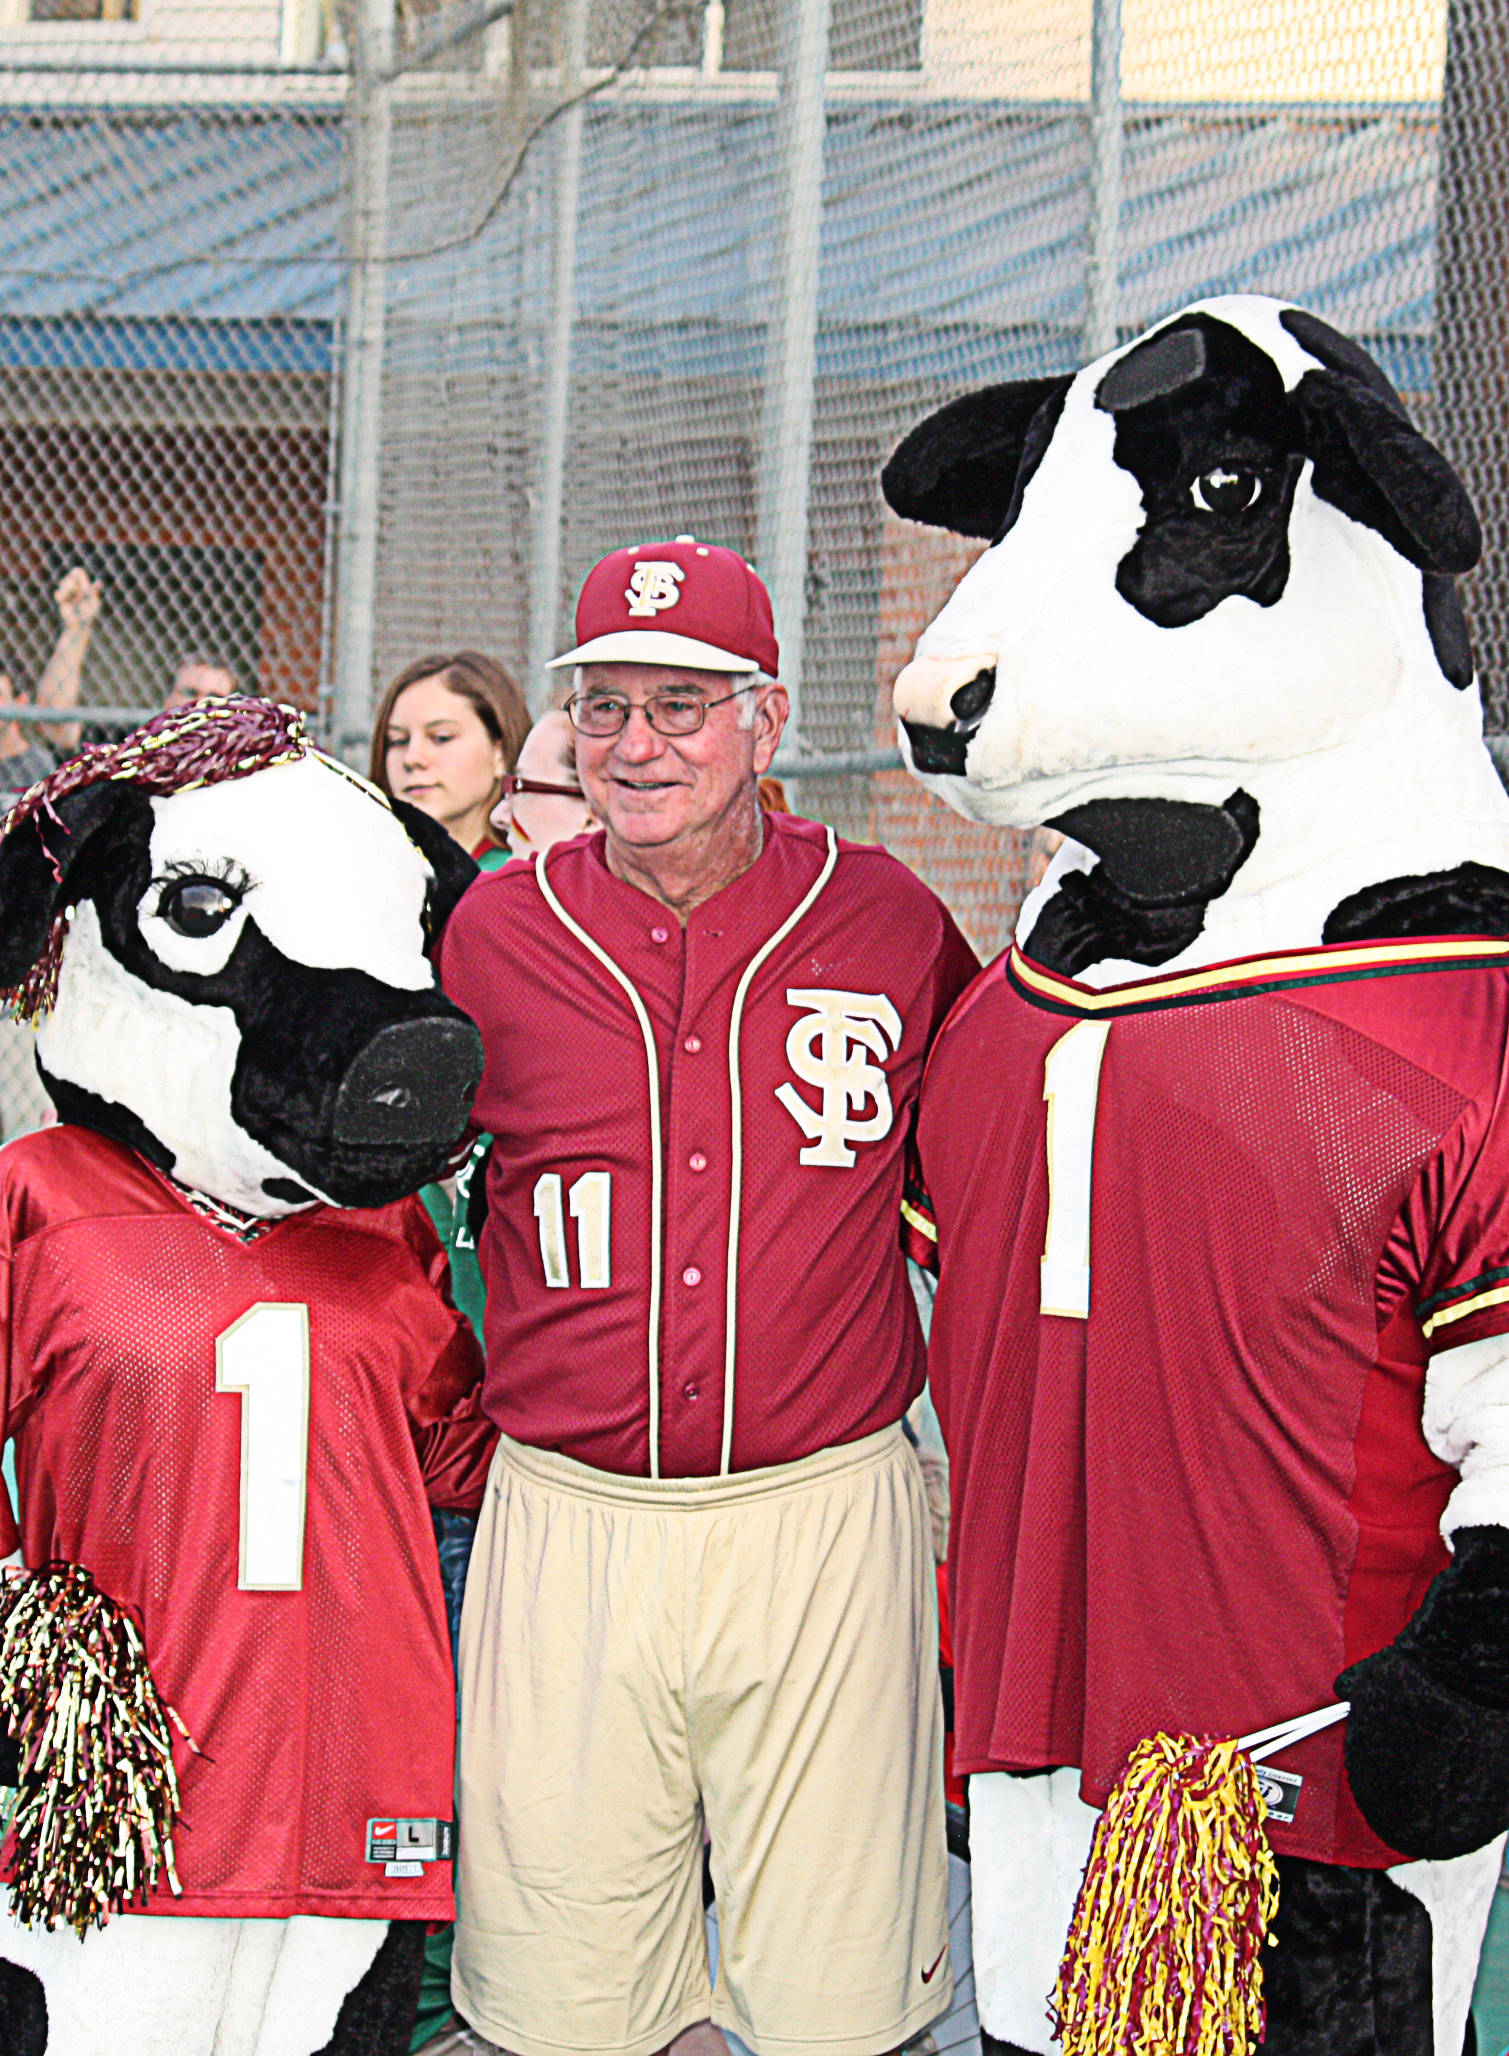 Mike Martin (11) stands with Chick-Fil-A's mascots